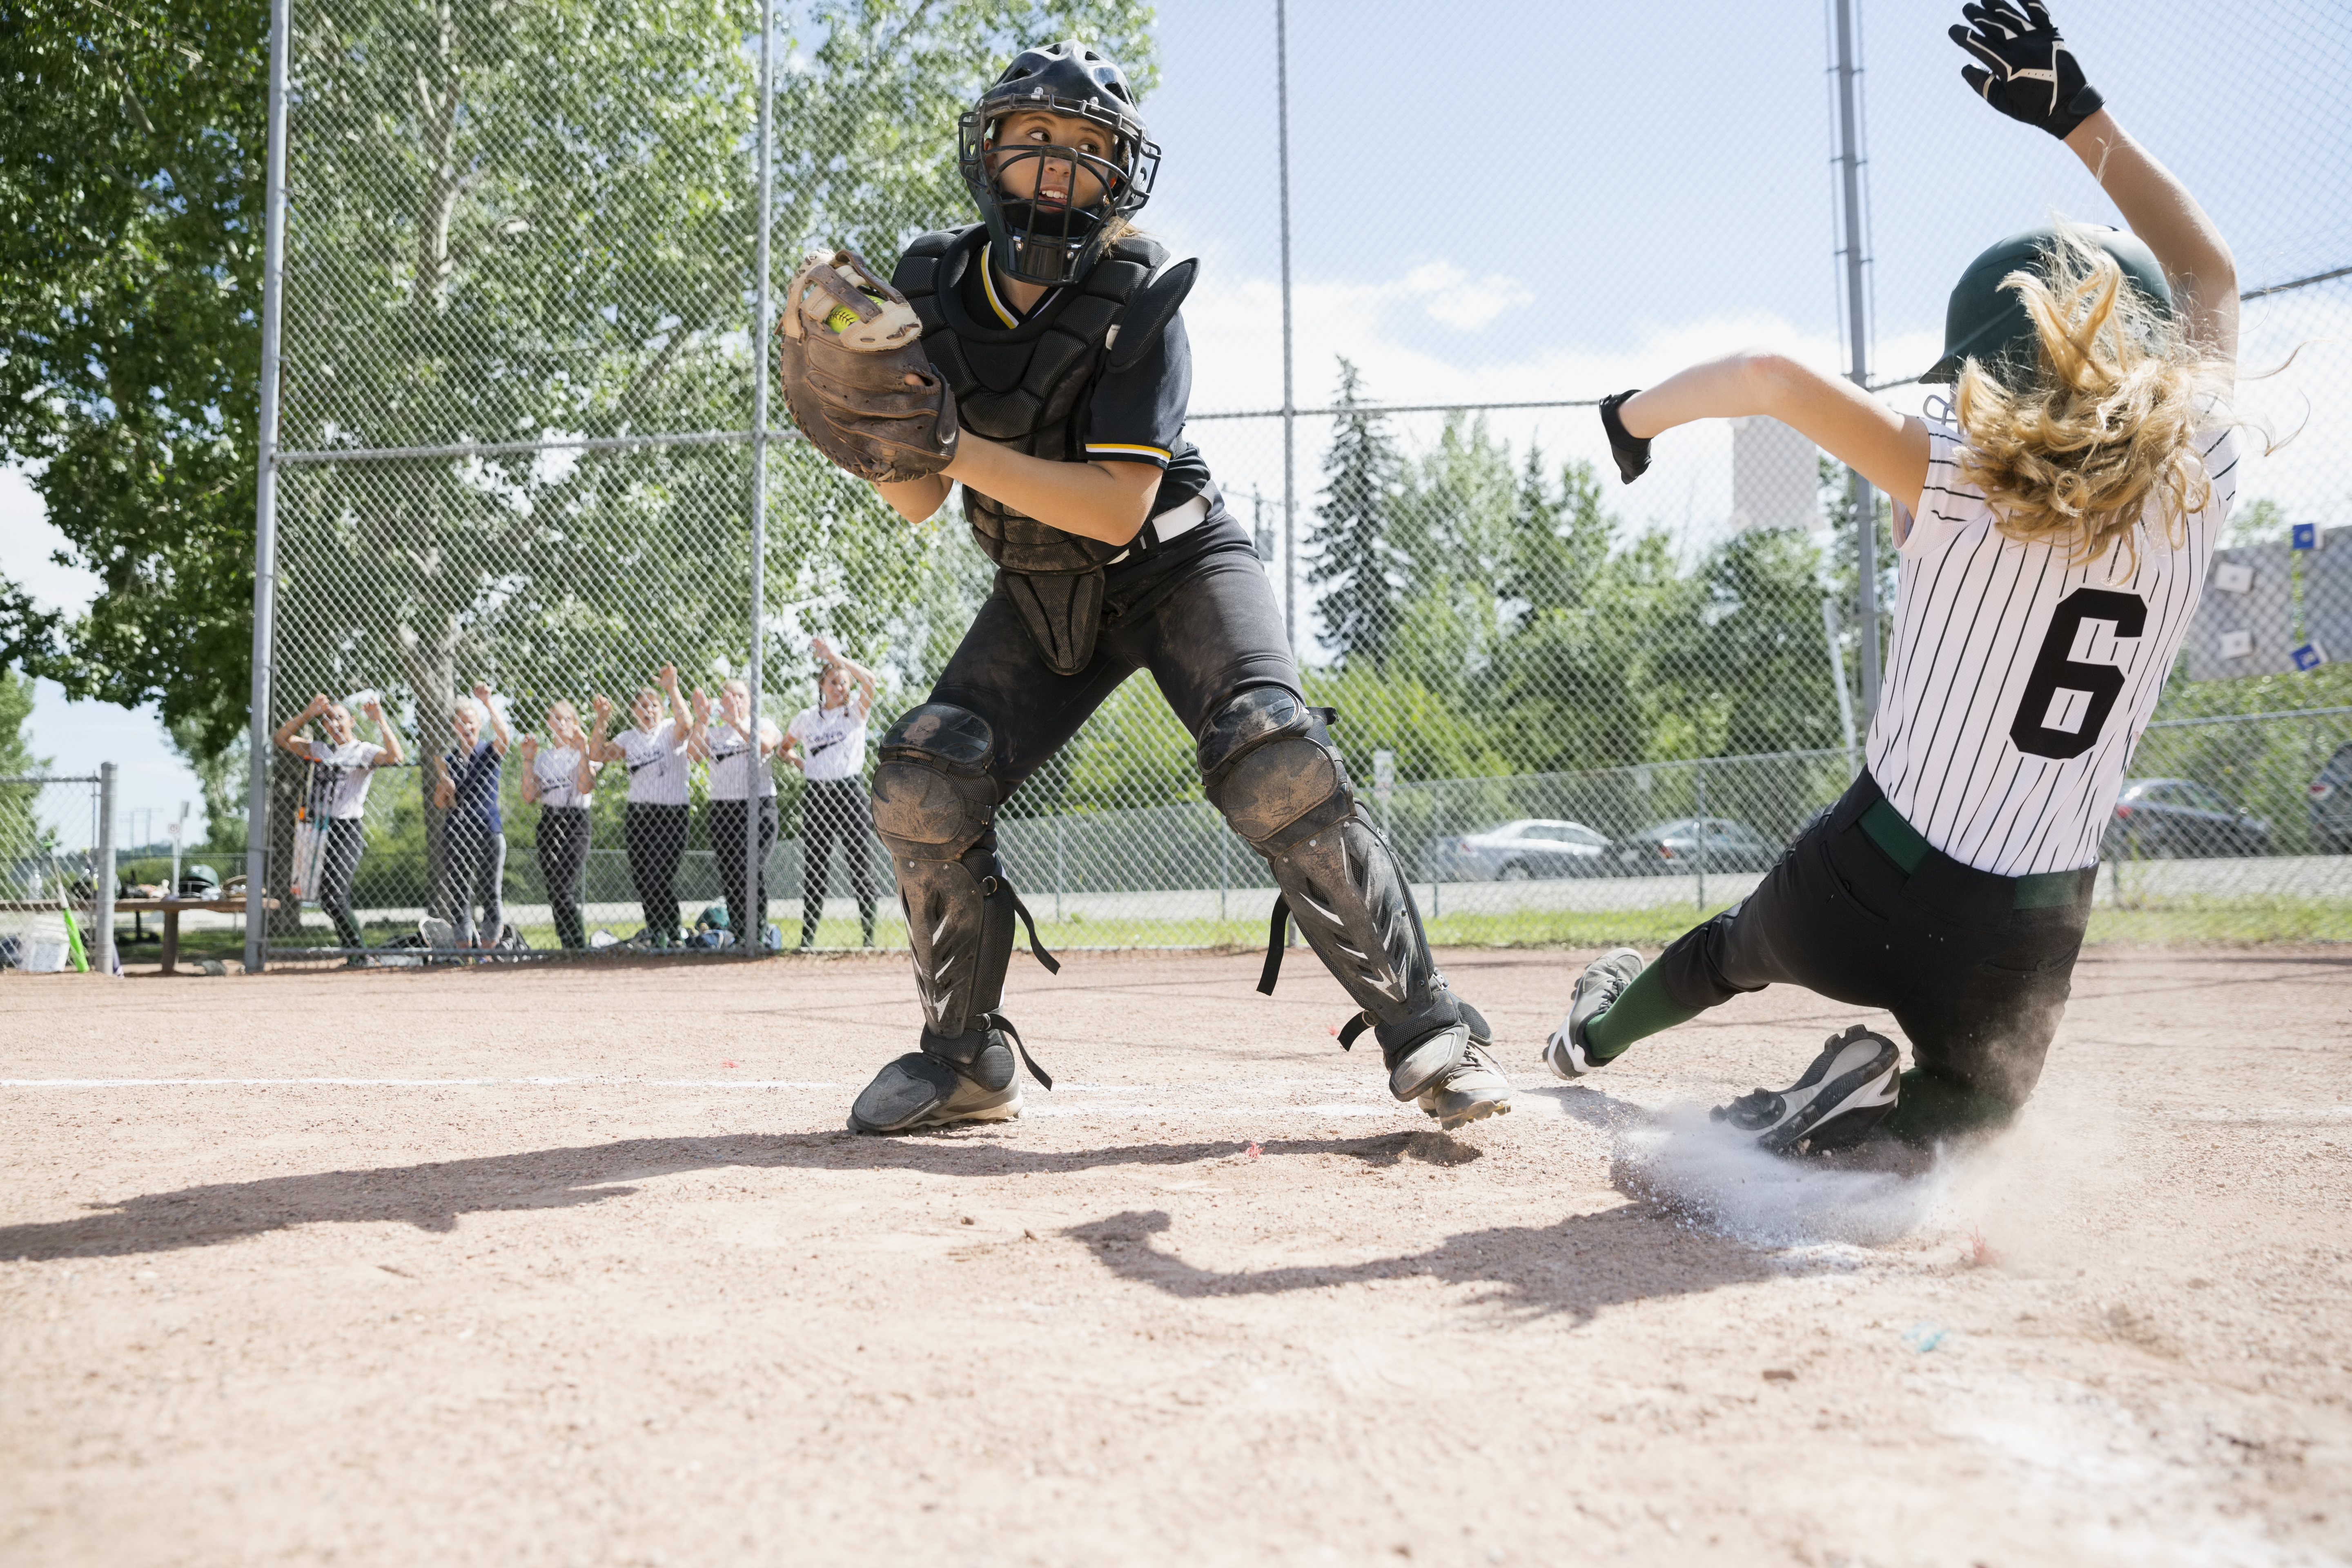 woman sliding into home base playing baseball